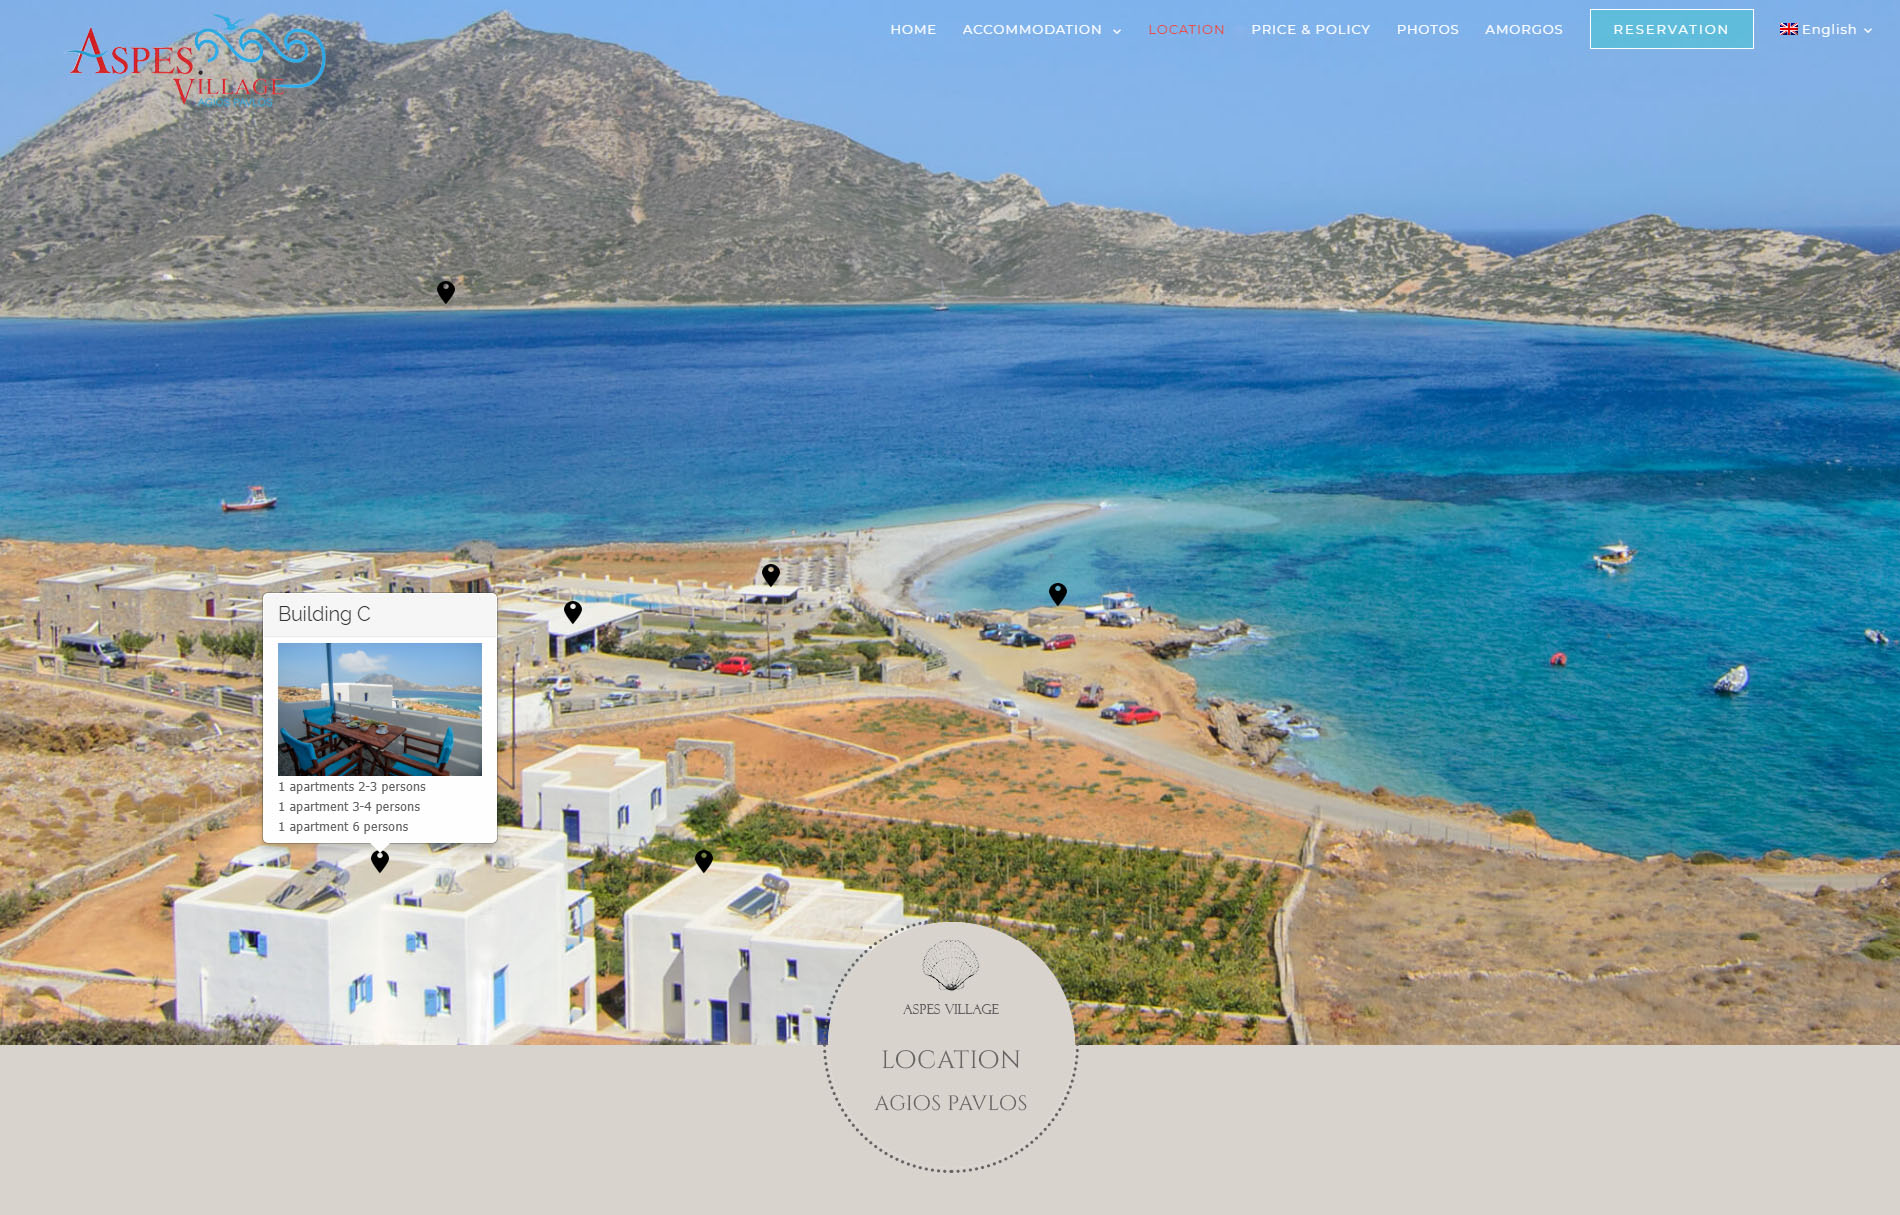 Aspes Village Amorgos Accommodation Website